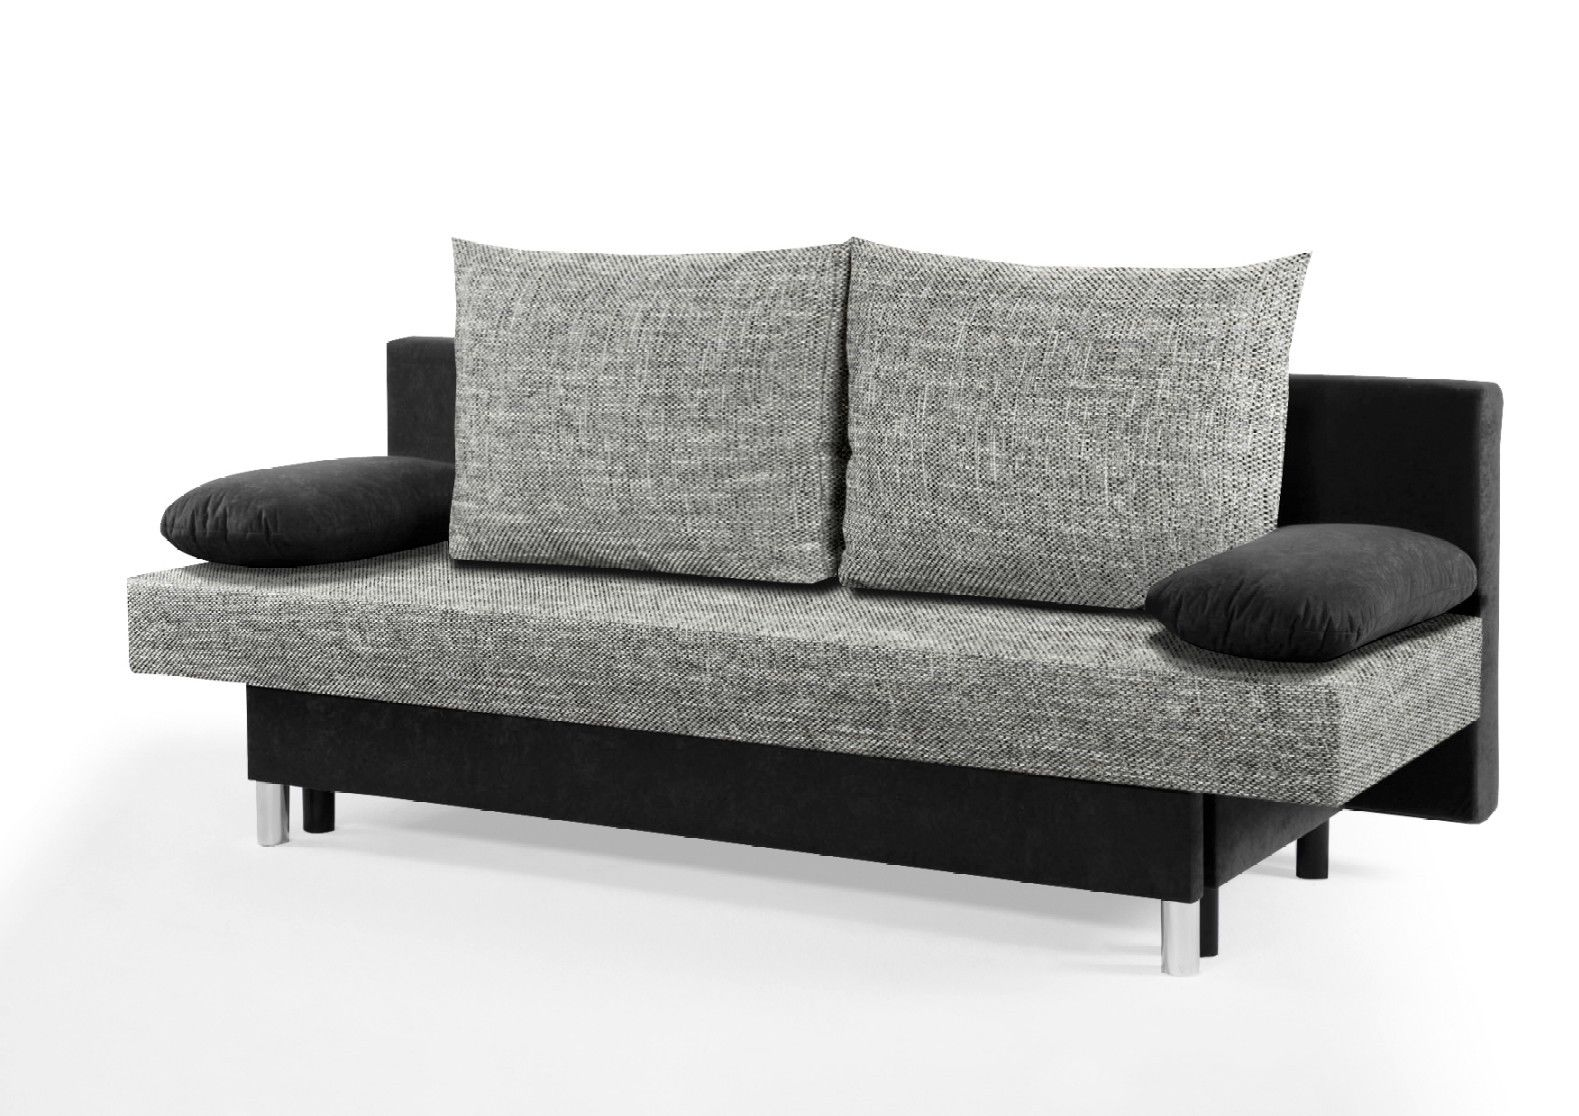 schlafsofa schlafcouch couch sofa bett liege microfaser schwarz grau braun kaufen bei go perfect. Black Bedroom Furniture Sets. Home Design Ideas